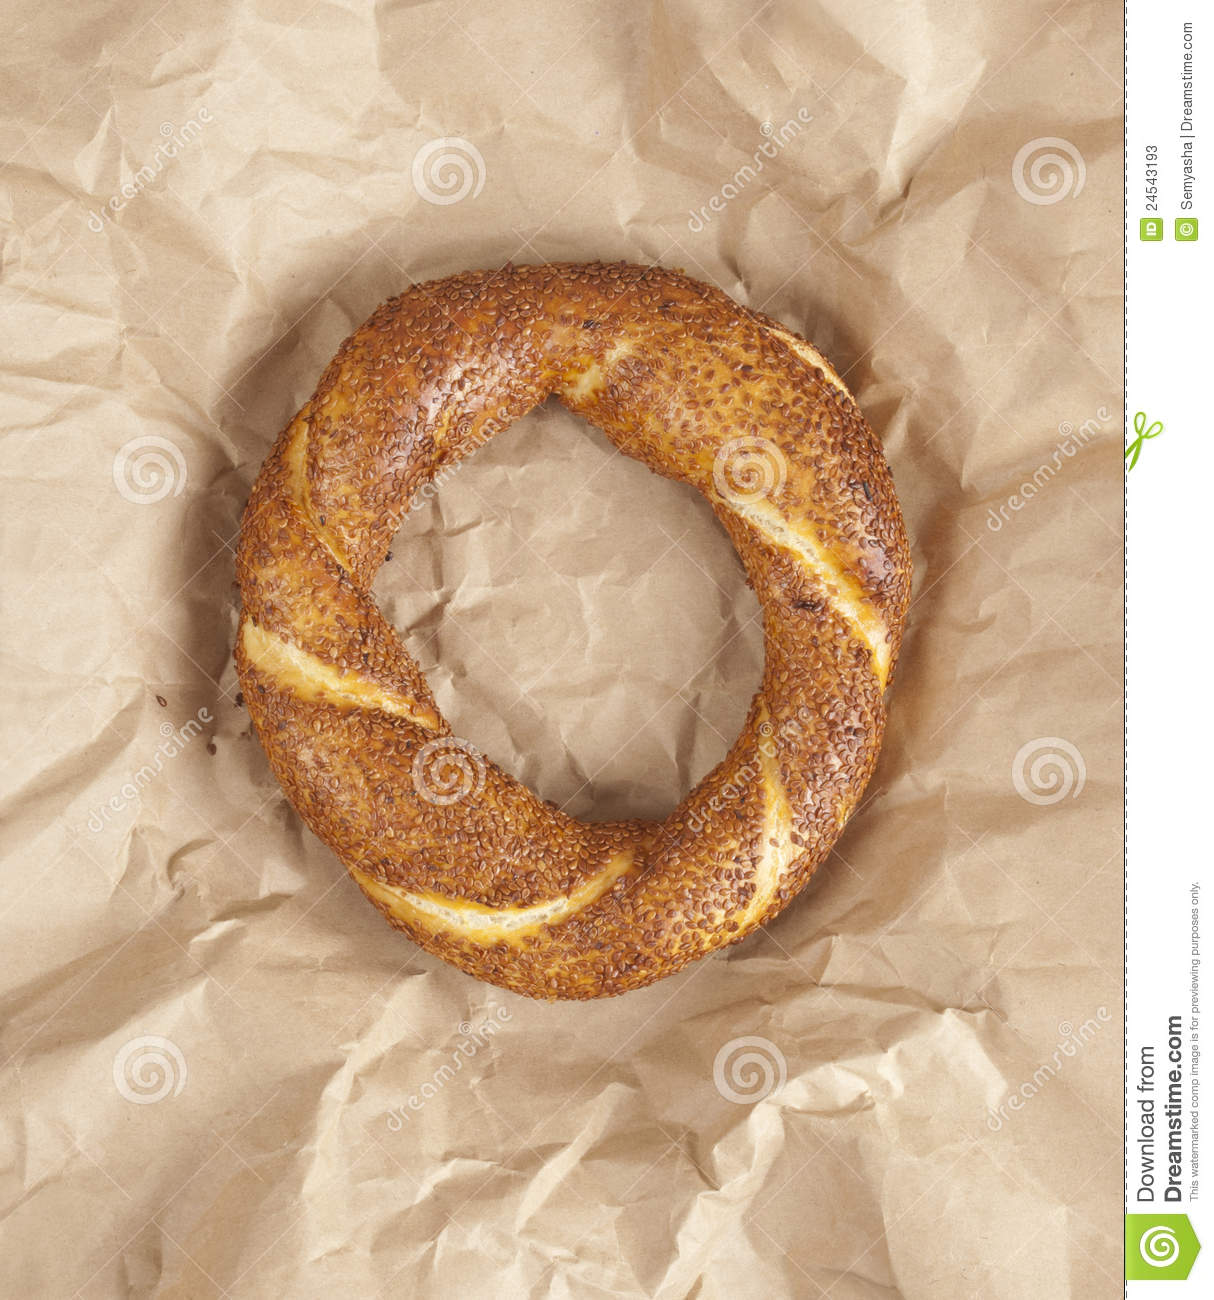 business eating and finagle a bagel essay Sbe/310 all 7 weeks discussions – devry purchase here: finagle a bagel w1 dq2 sideline business w5 dq1 – market segmentation.